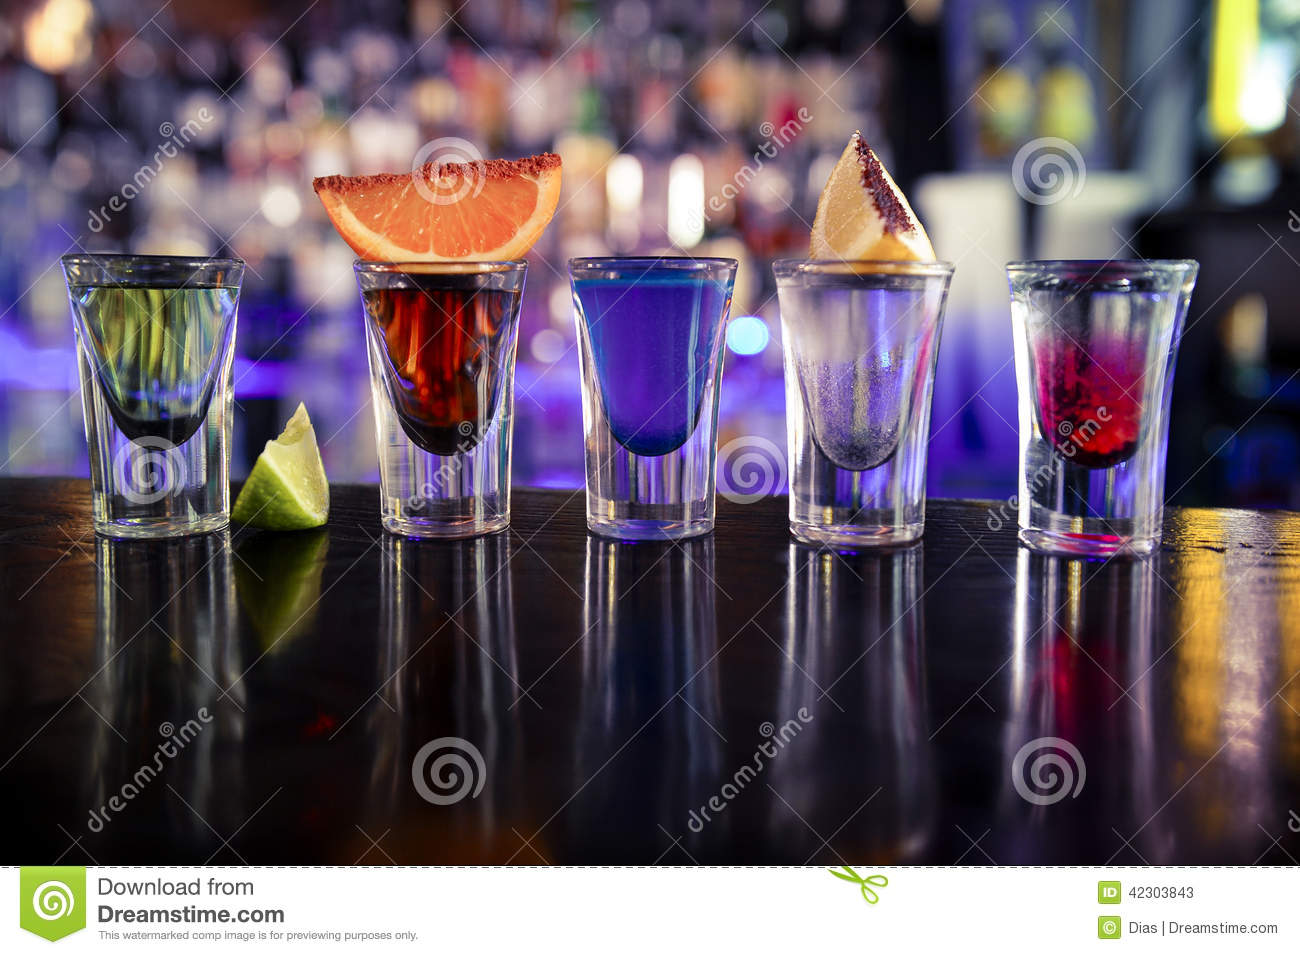 Best Alcohol Shots to Order and Drink - iCohol.com